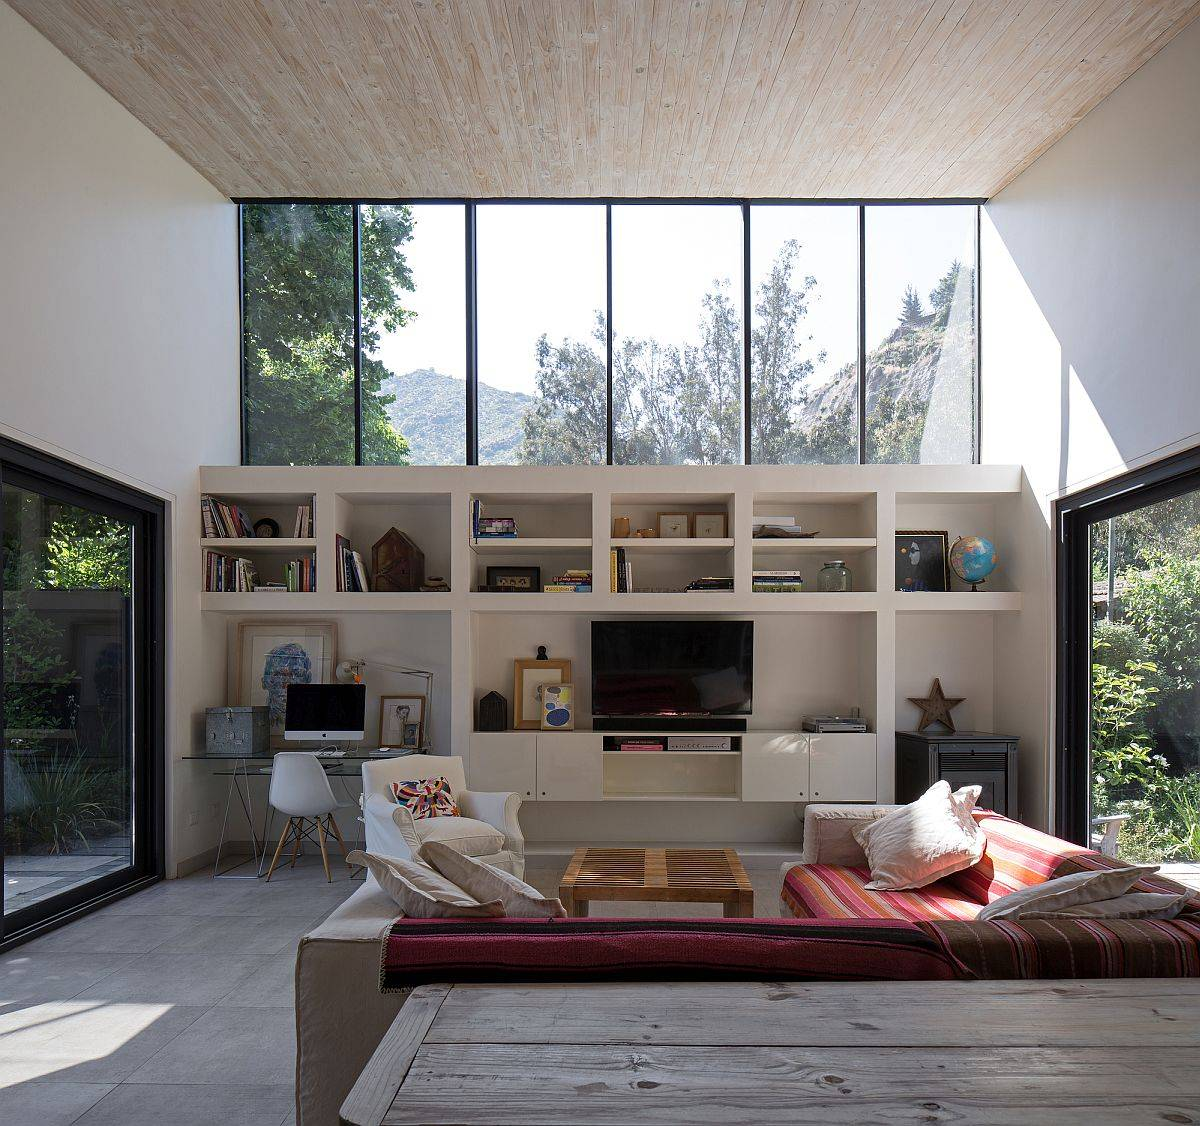 Fabulous-double-height-living-room-with-clerestory-windows-that-offer-a-view-of-the-Andes-mountains-38286